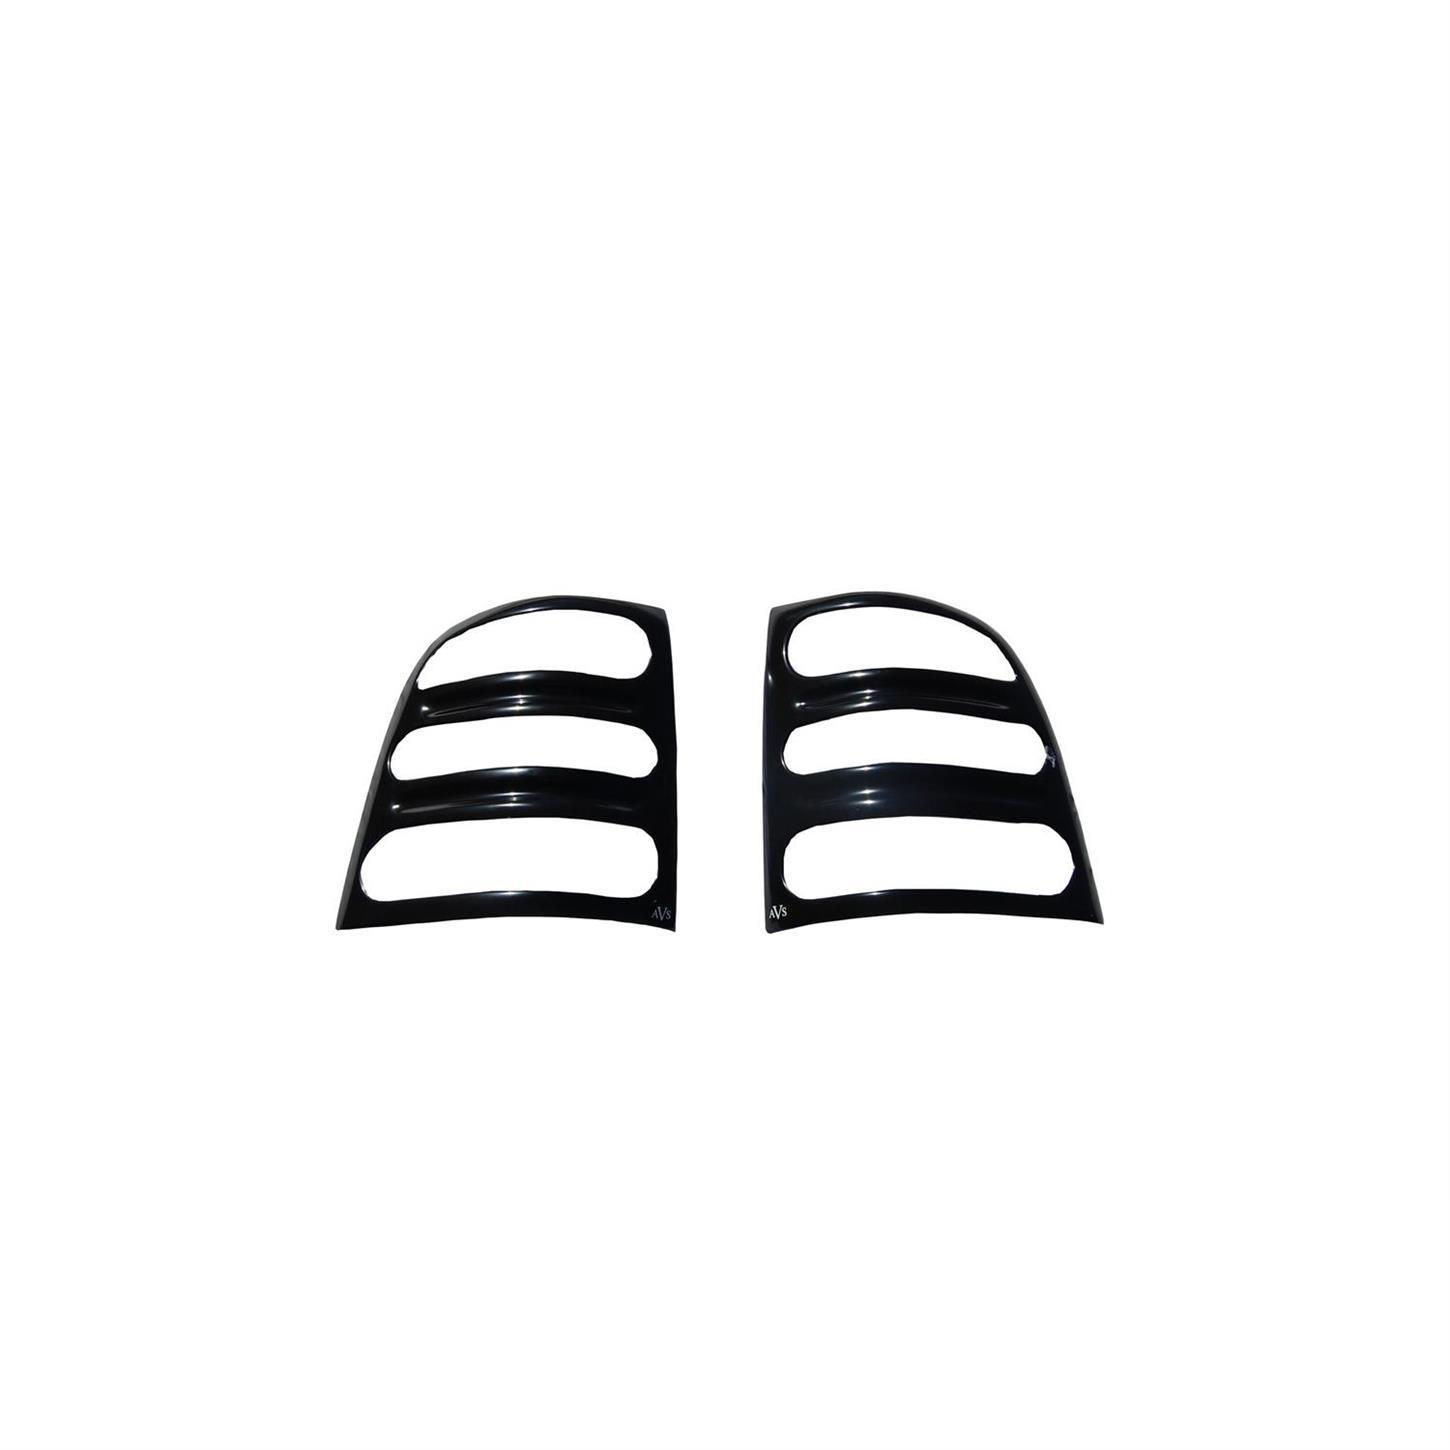 AVS Black Slotted Tail Light Covers 94-02 Dodge Ram Pickup